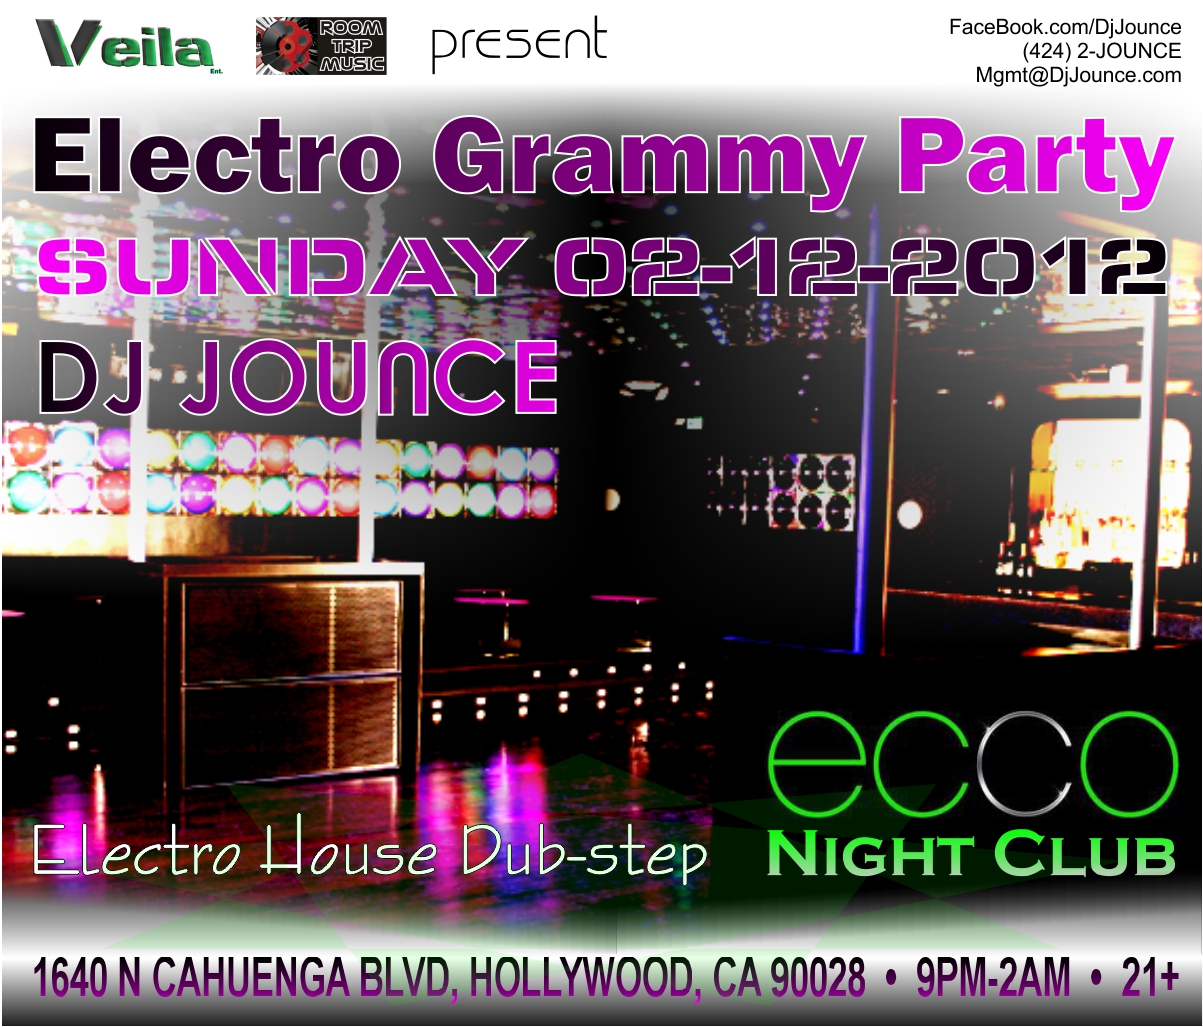 DJ Jounce Ecco Grammy Party 20120212